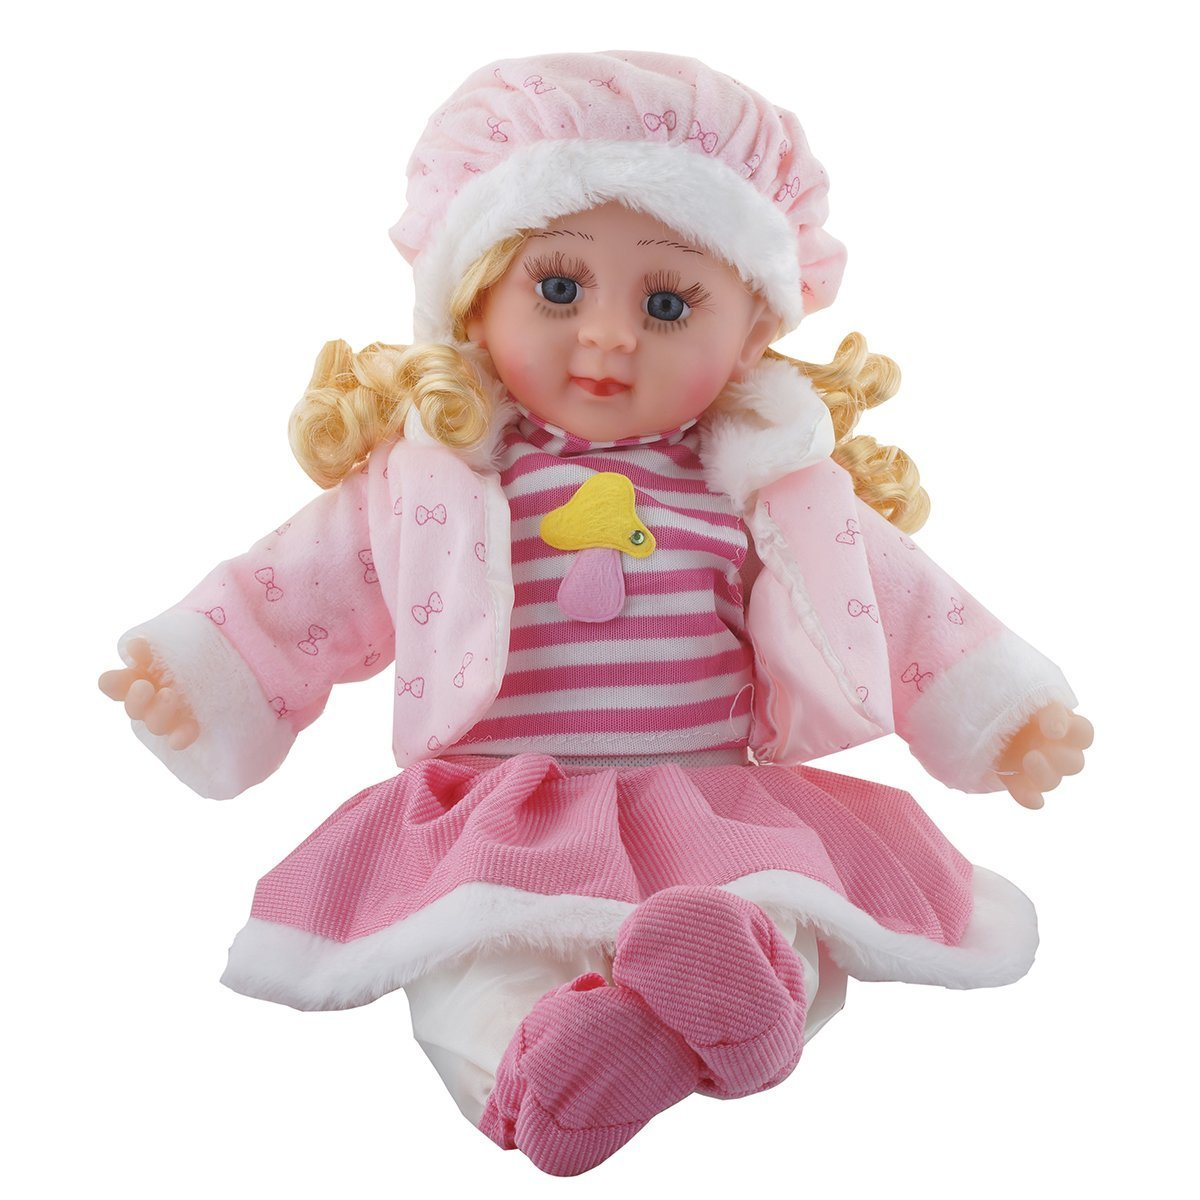 39129db8c9a Baby Doll  Buy Baby Doll online at best prices in India - Amazon.in